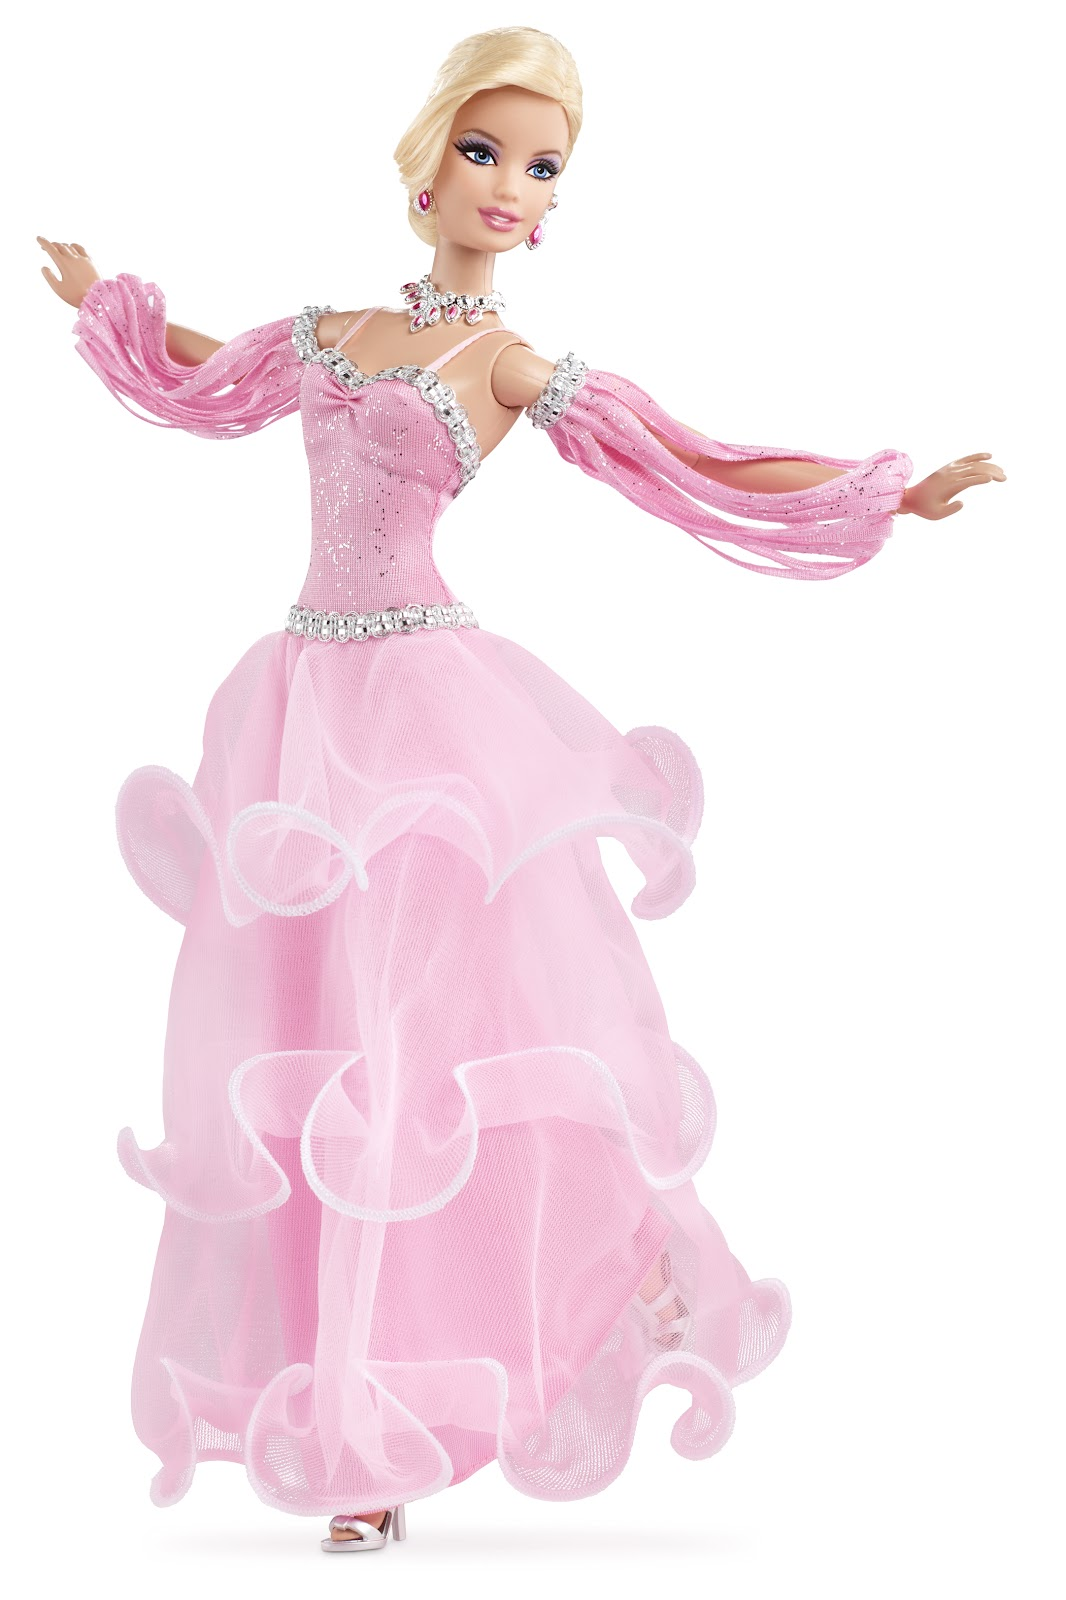 Barbie pictures and wallpapers: Beautiful barbie pics